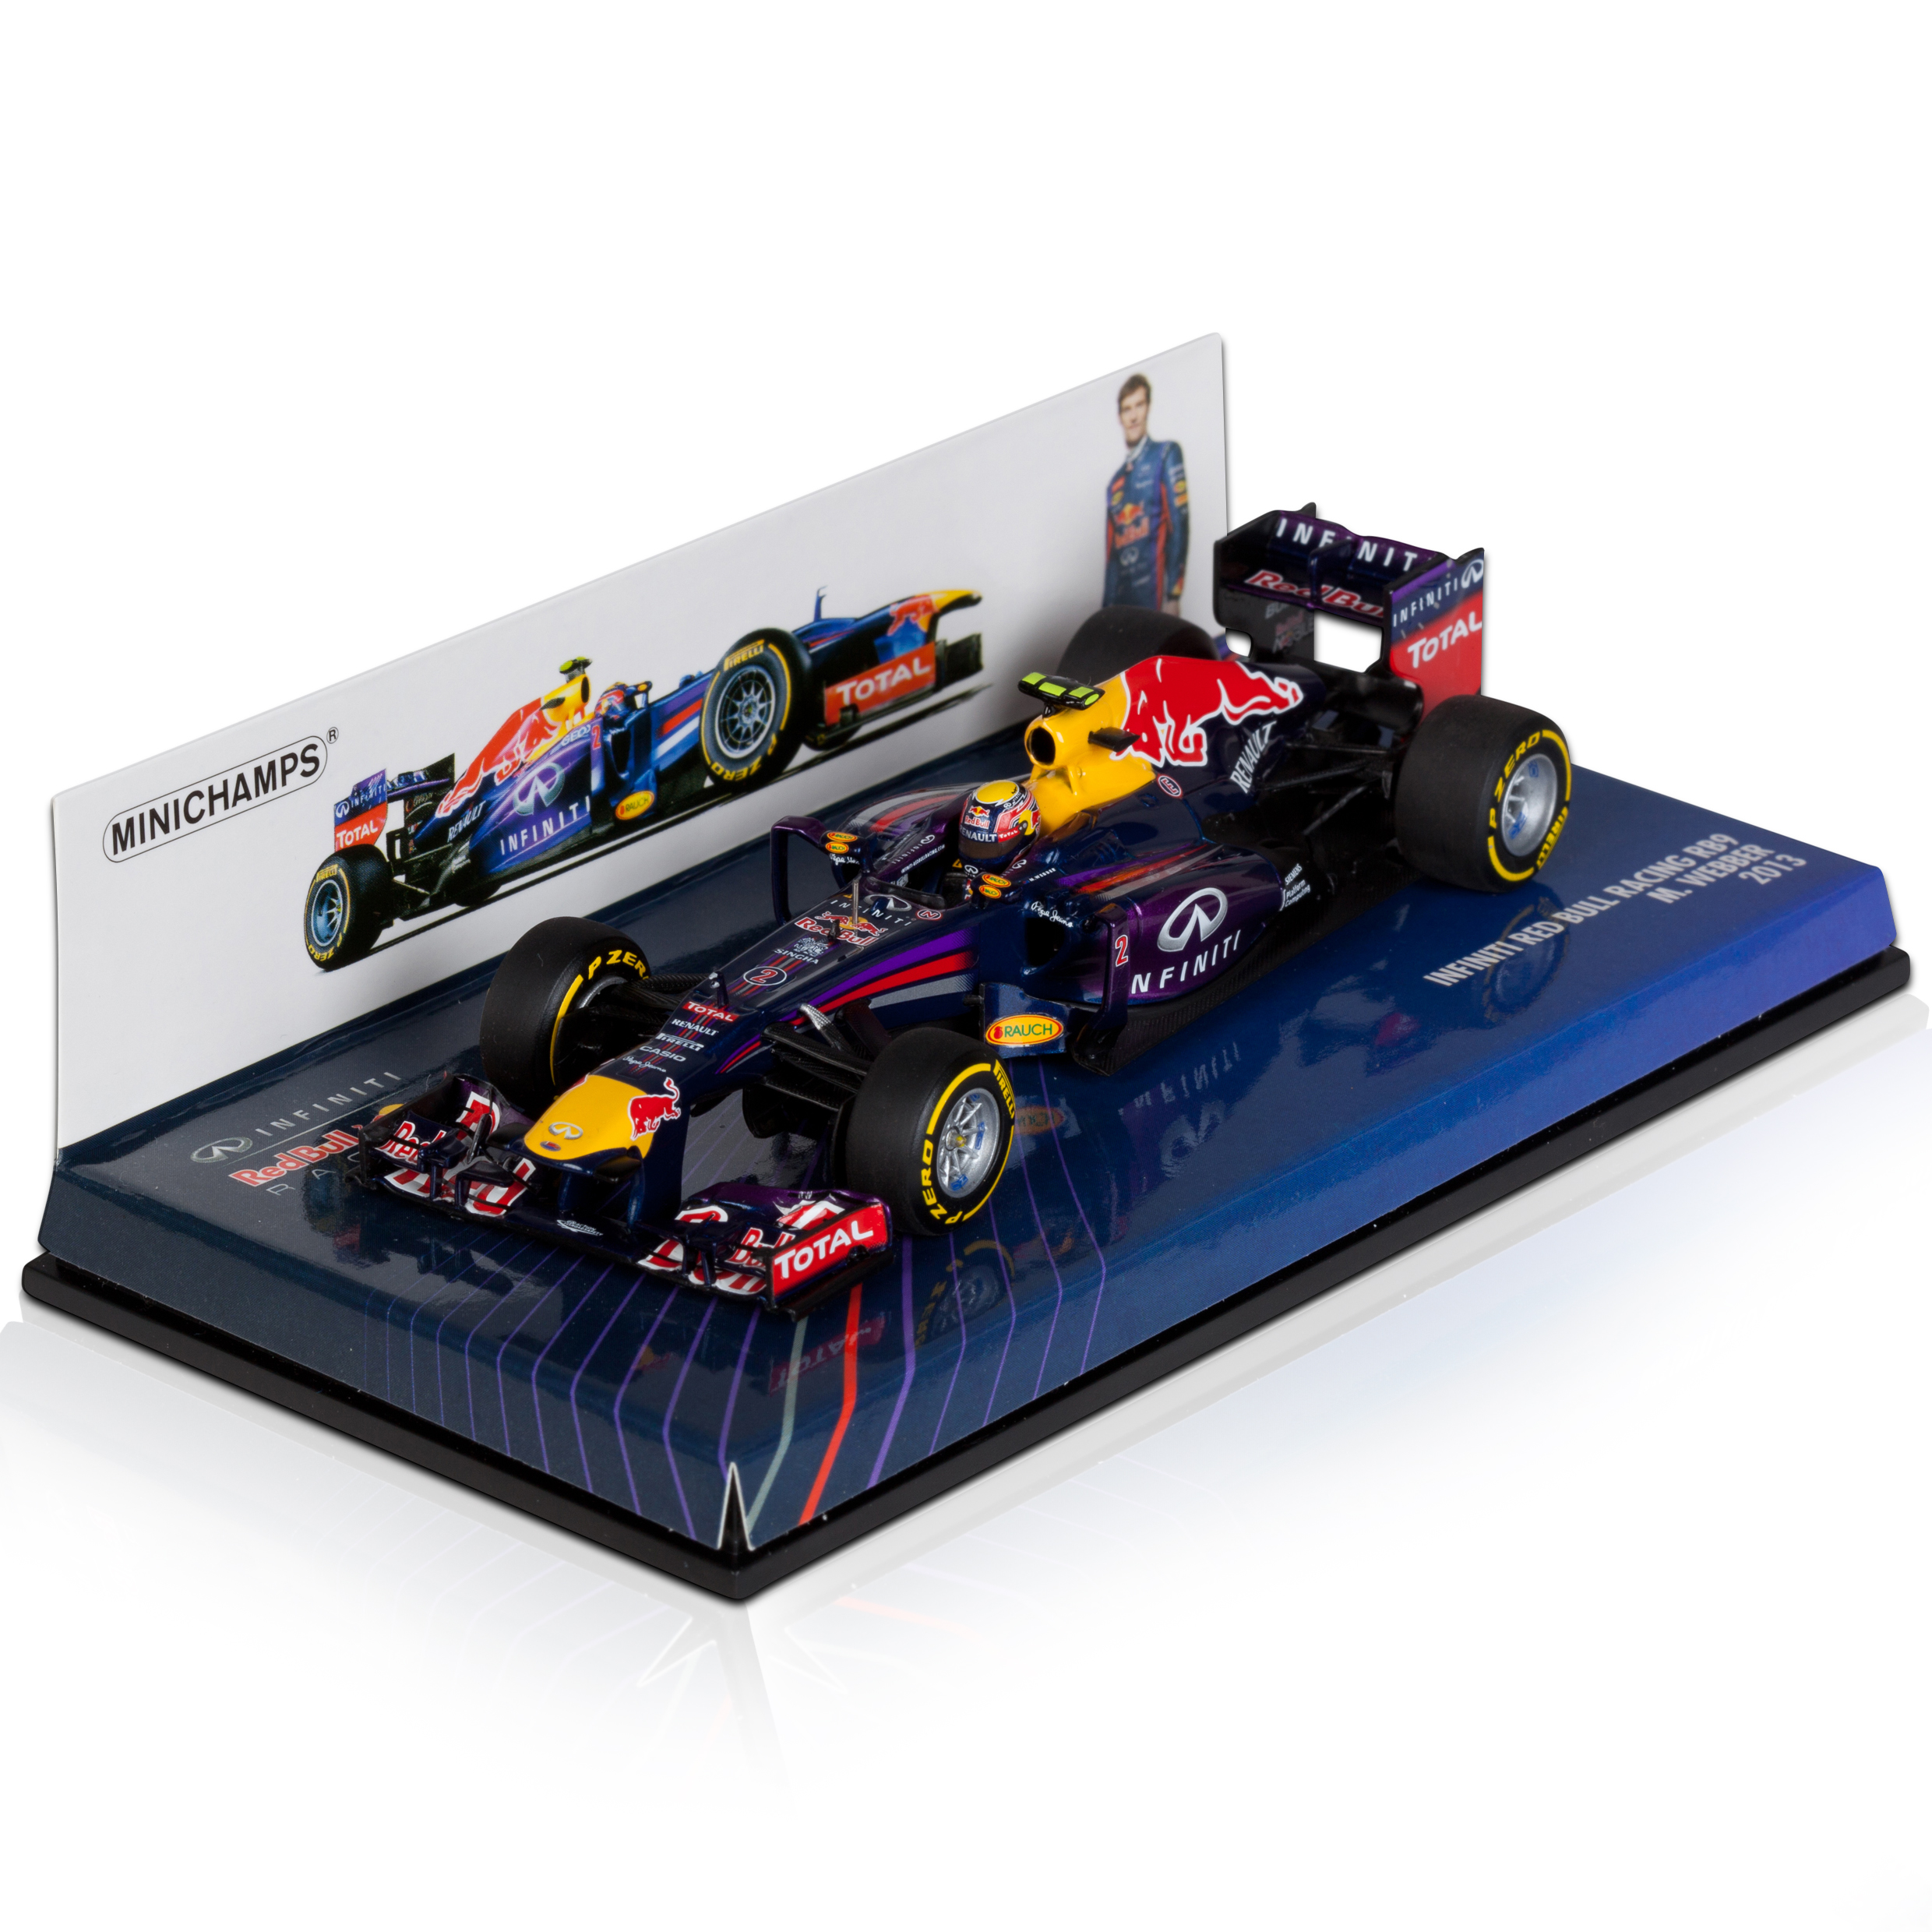 Infiniti Red Bull Racing Renault RB9 Mark Webber 2013 1:43 Scale